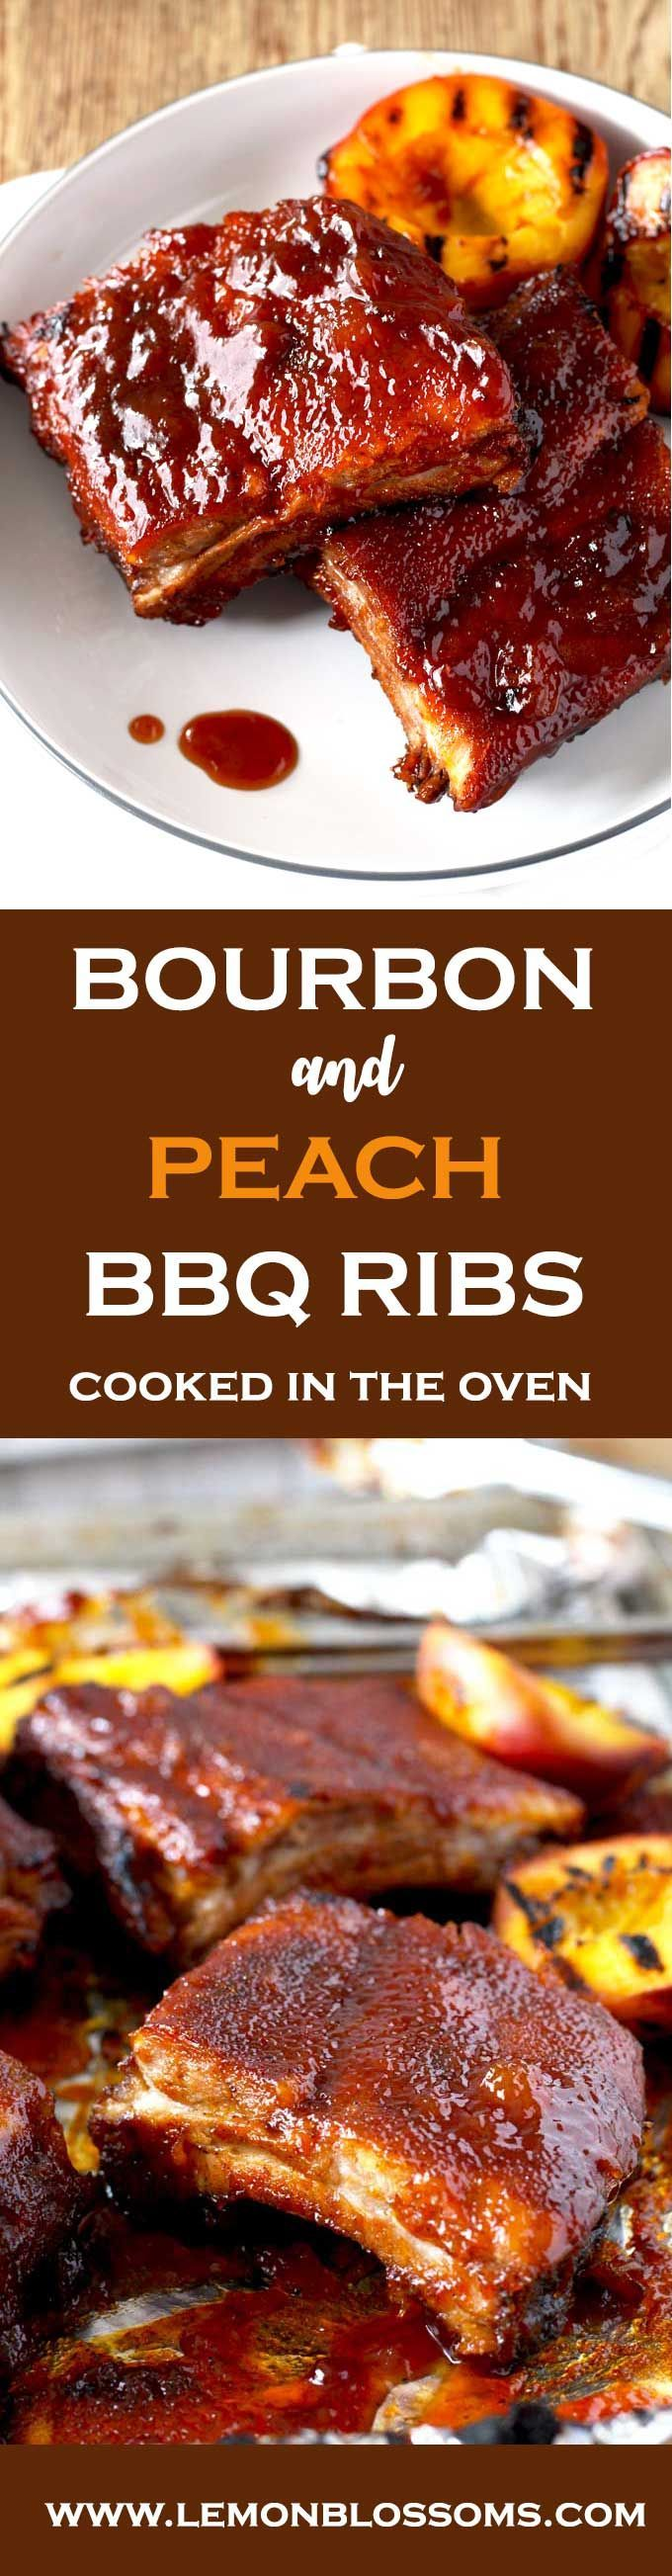 These Mouthwatering Bourbon and Peach BBQ ribs are seasoned with a simple spice rub mix and cooked in the oven until fall-off-the-bone tender. Smothered in a lip-smacking Bourbon and Peach BBQ sauce, these ribs are easy, delicious and foolproof! #ovenribs #ribs #BBQ #bourbon #oven via @https://www.pinterest.com/lmnblossoms/